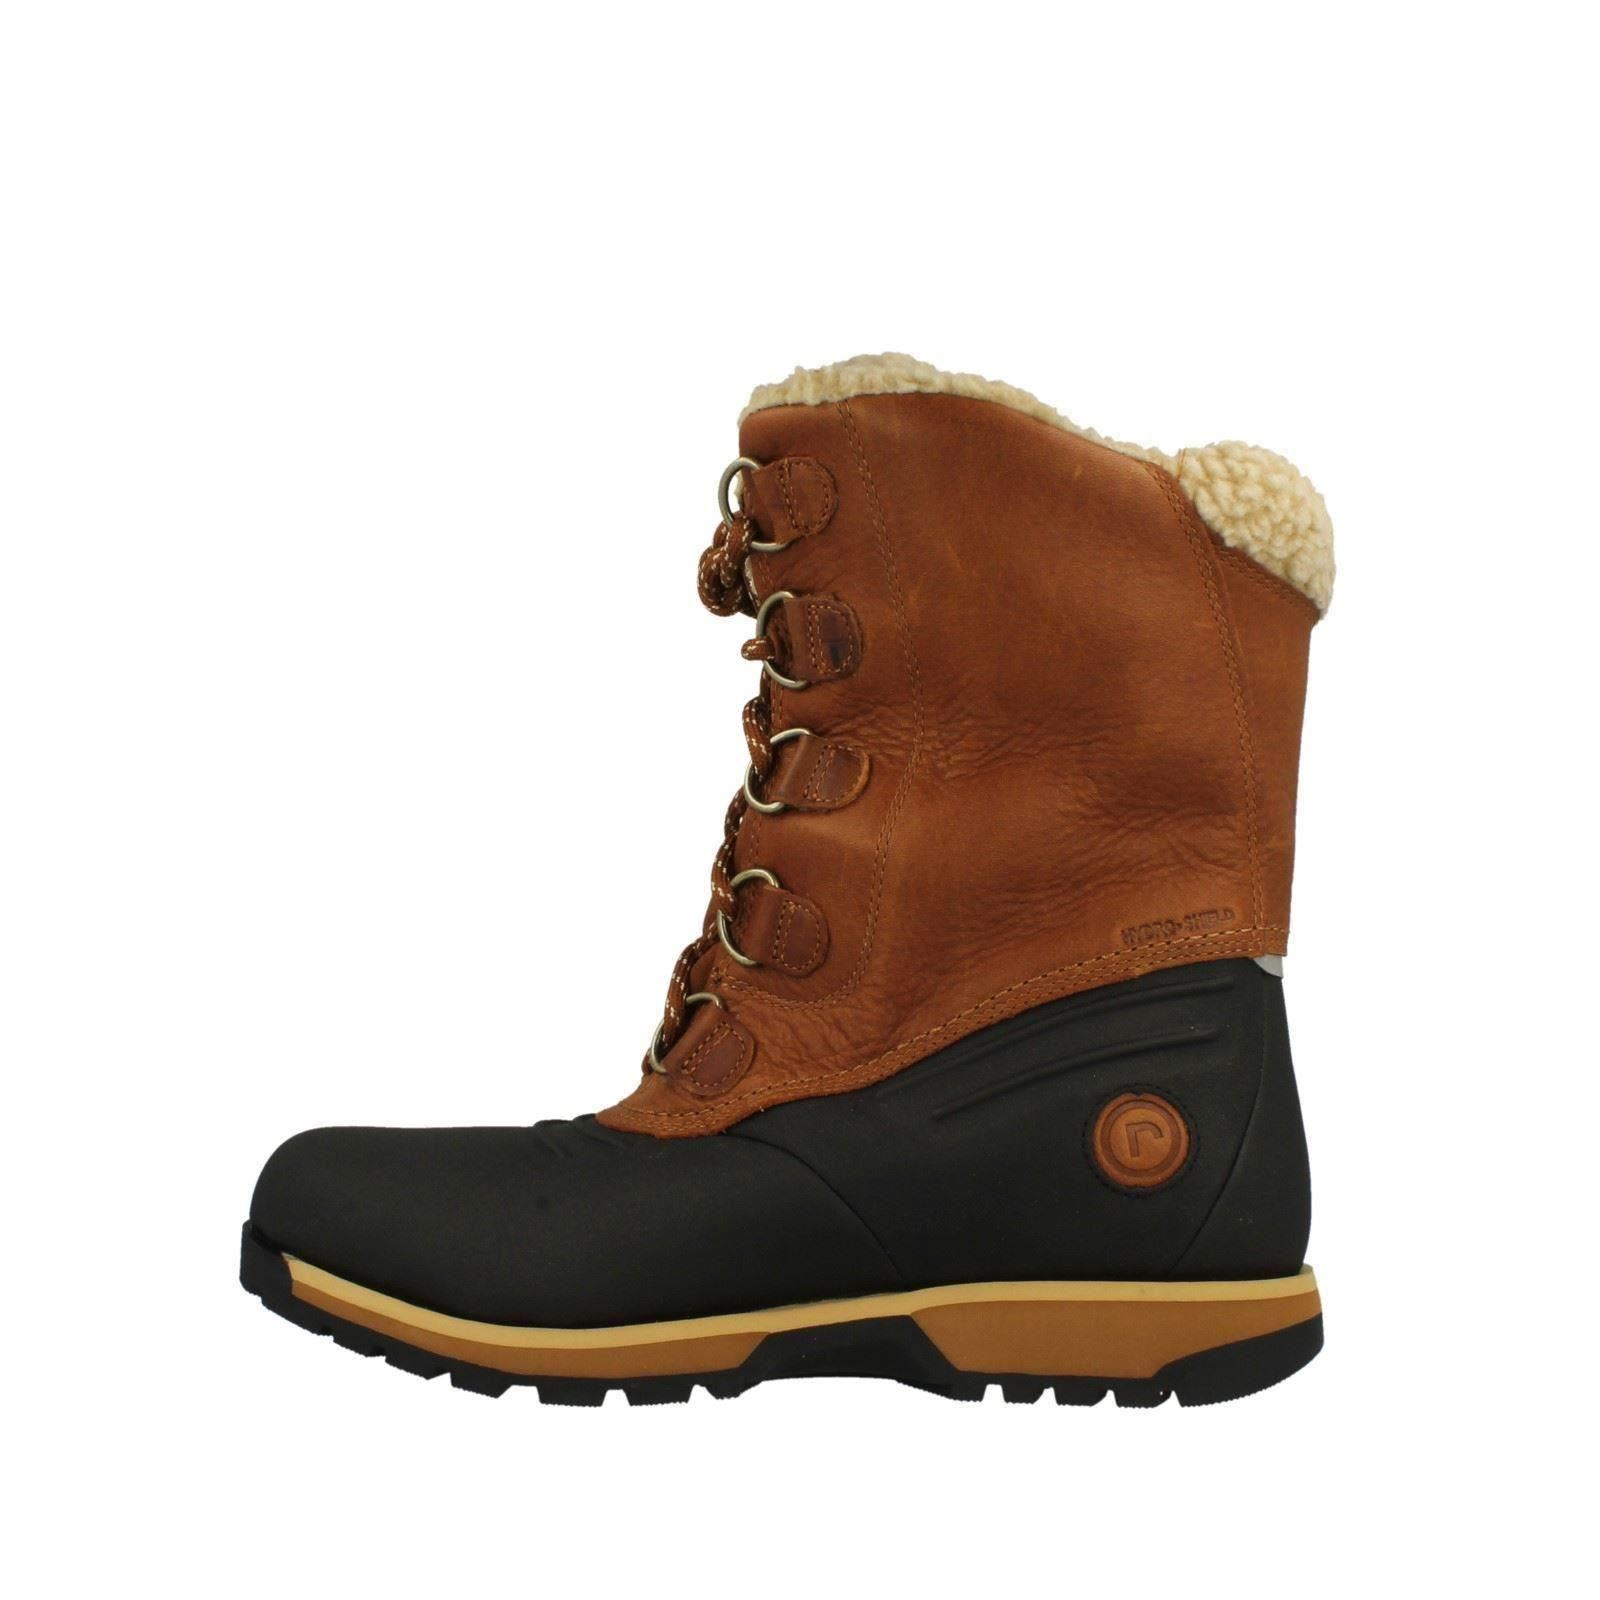 8ff6f0a97d8 Details about Mens Rockport Warmined Winter Boots Lux Lodge